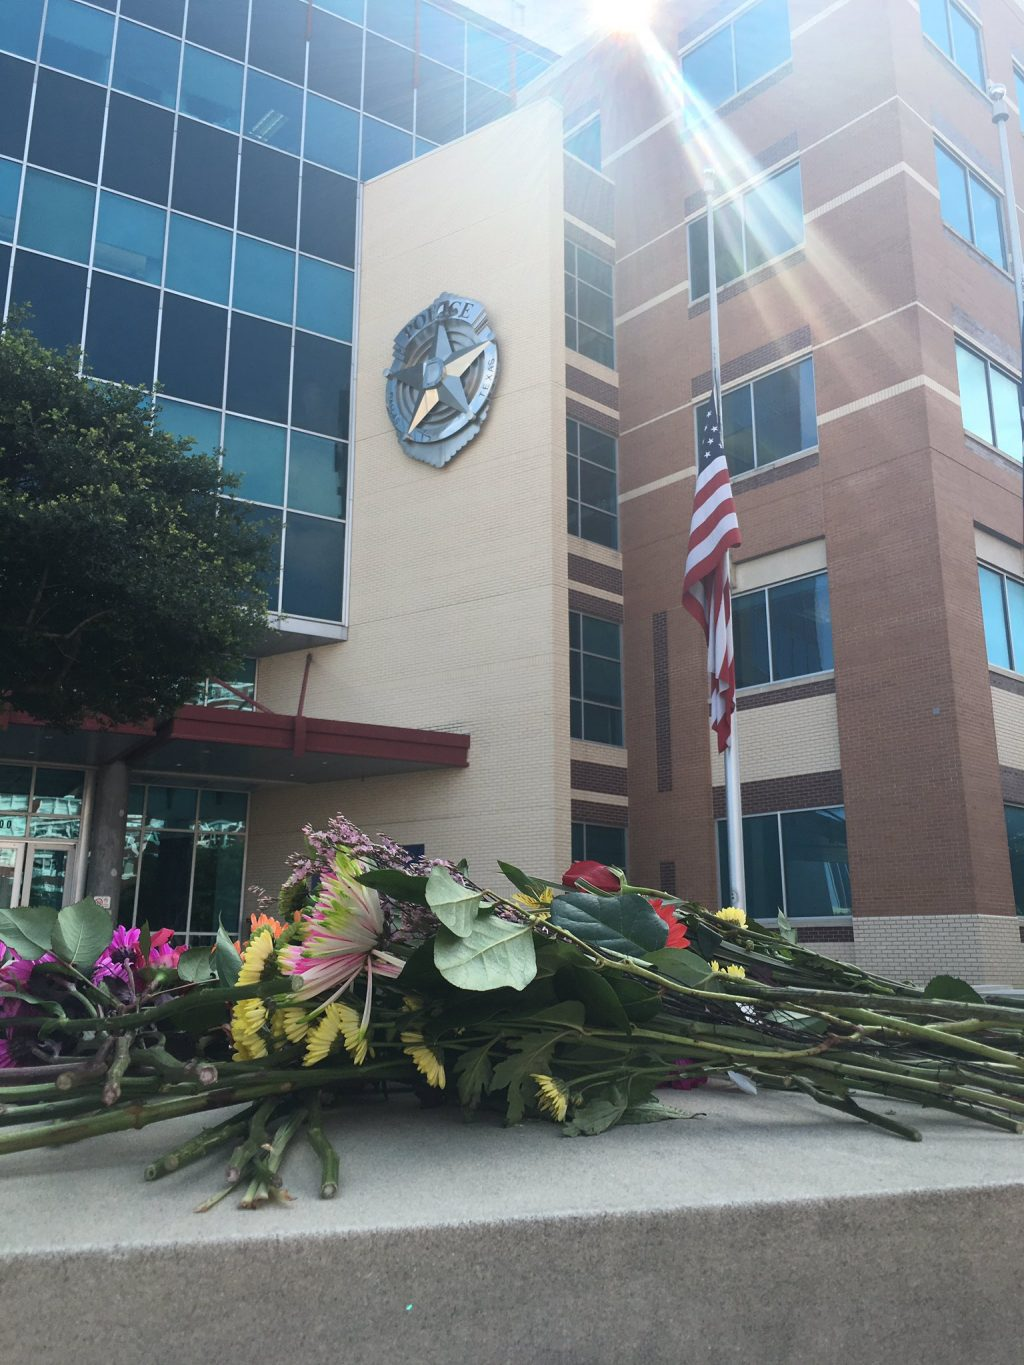 Flowers have been left in front of the Dallas Police Department after five officers were killed